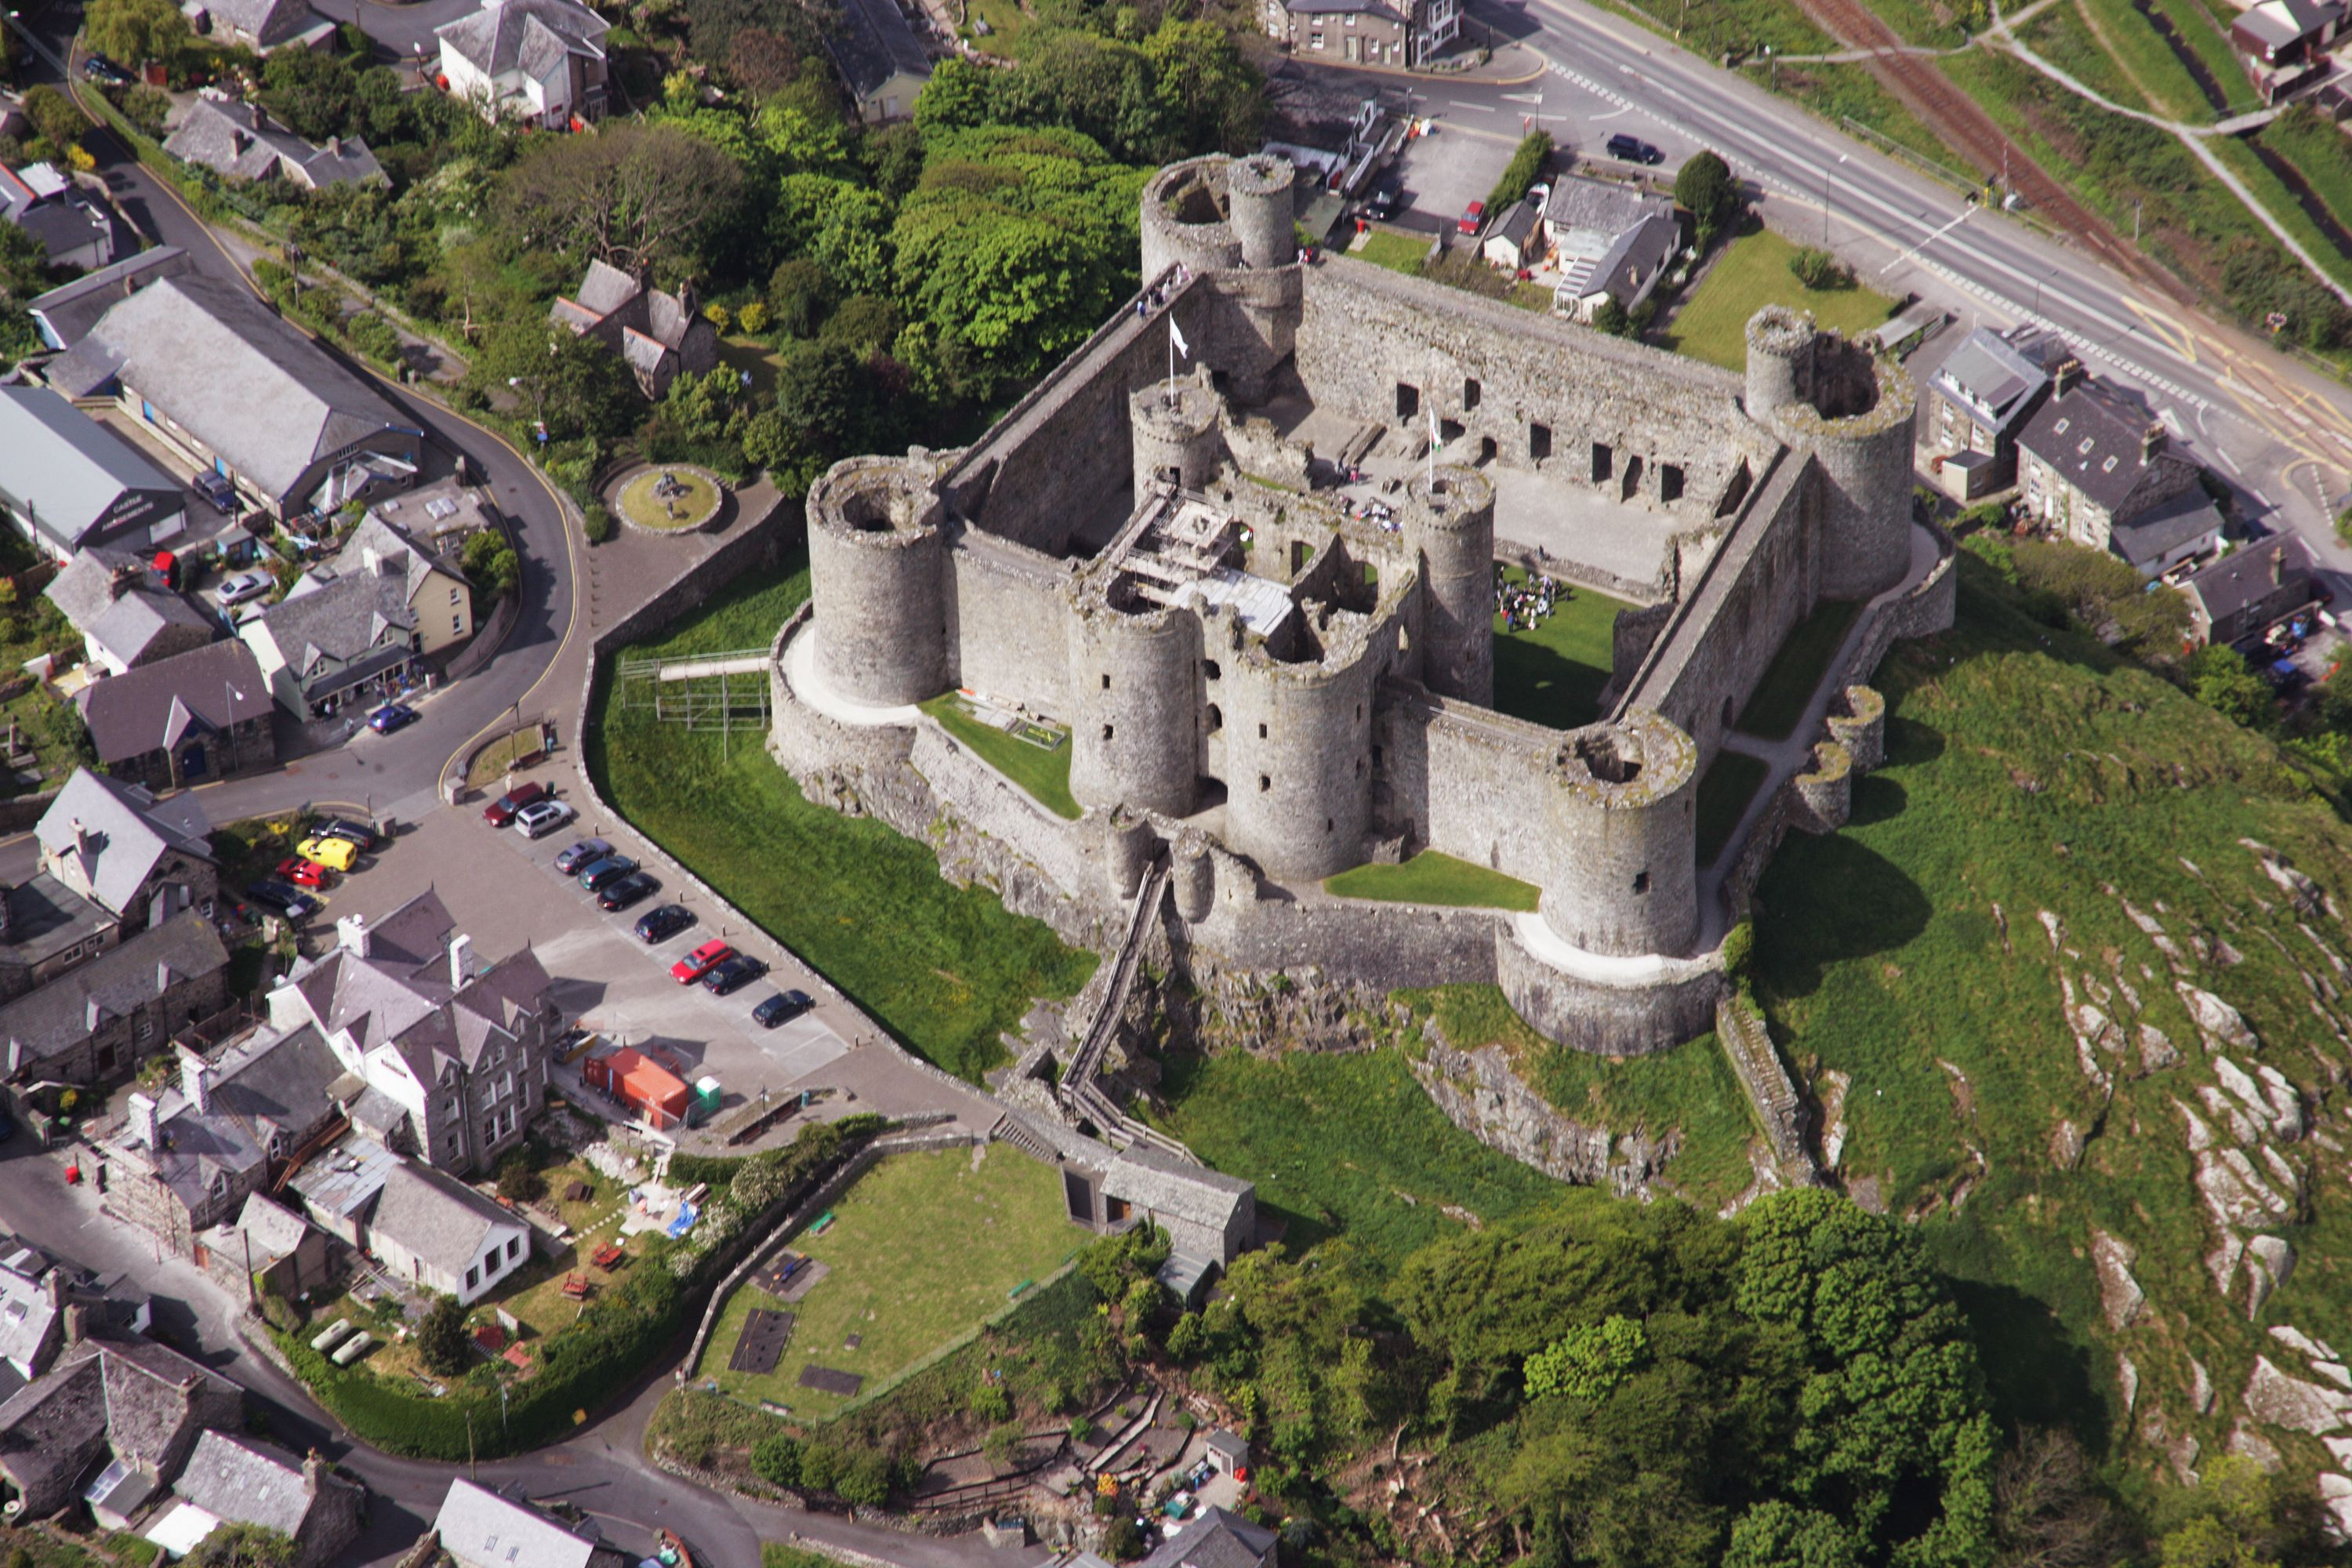 air view, harlech castle. england. 1286-90 #architecture #castle